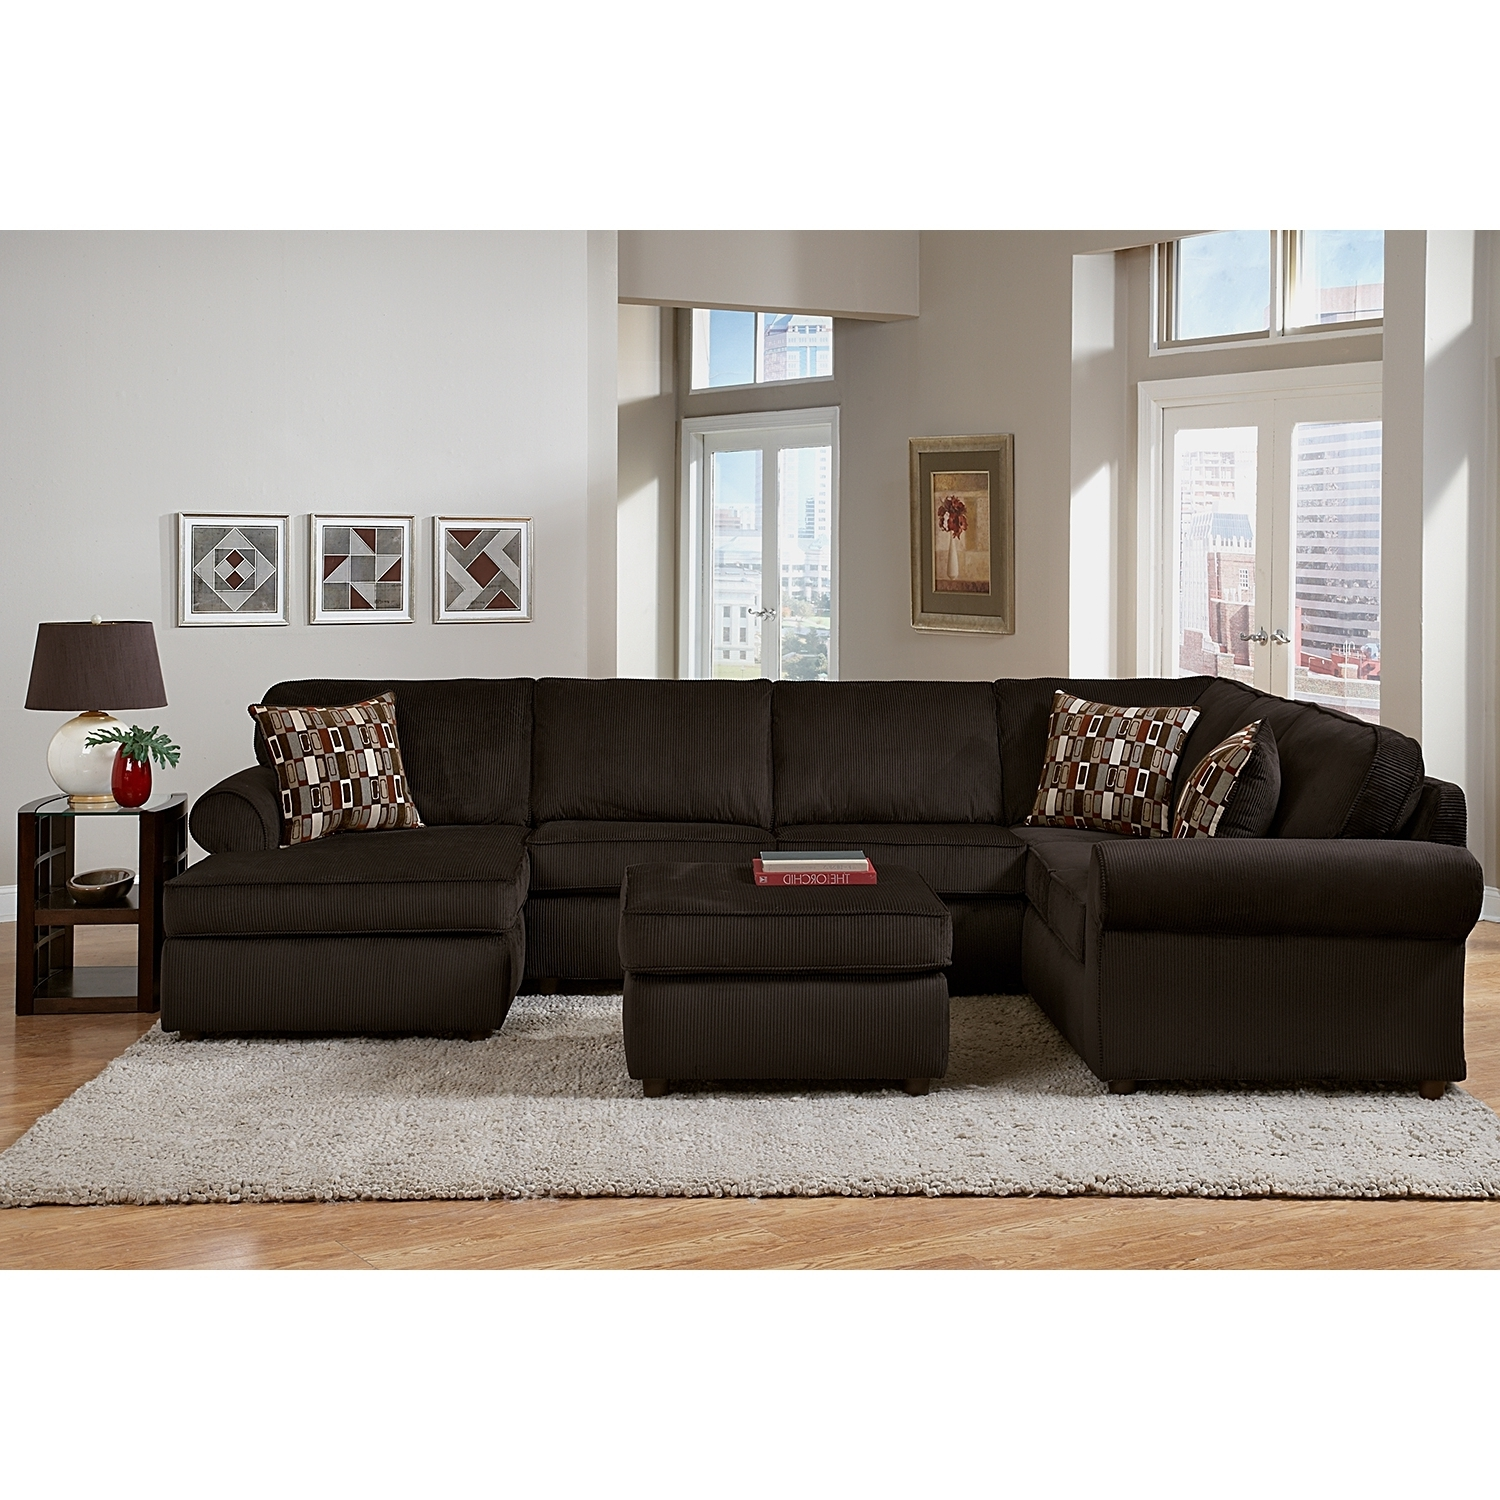 Picture 5 Of 34 – Sectional Sofas Sale Luxury Stunning Value City For 2019 Wichita Ks Sectional Sofas (View 11 of 20)